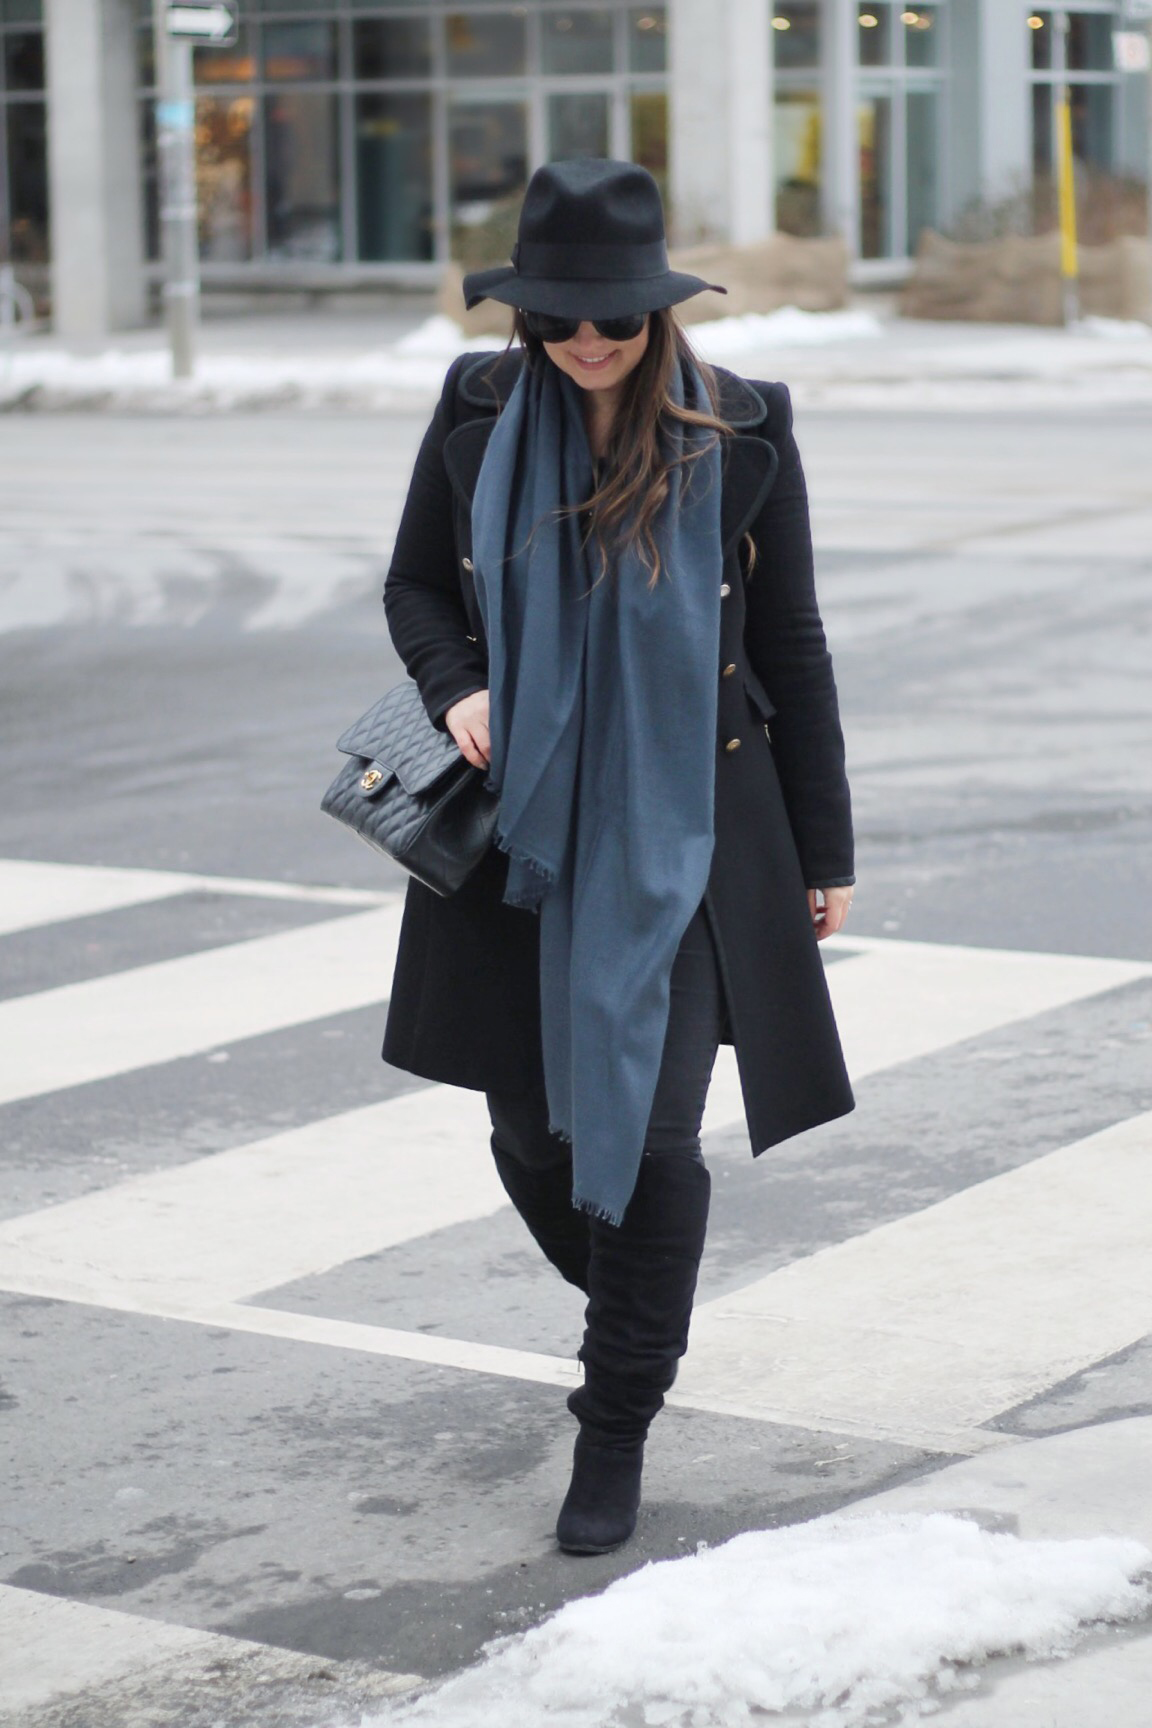 winter-fashion-style-what-to-wear